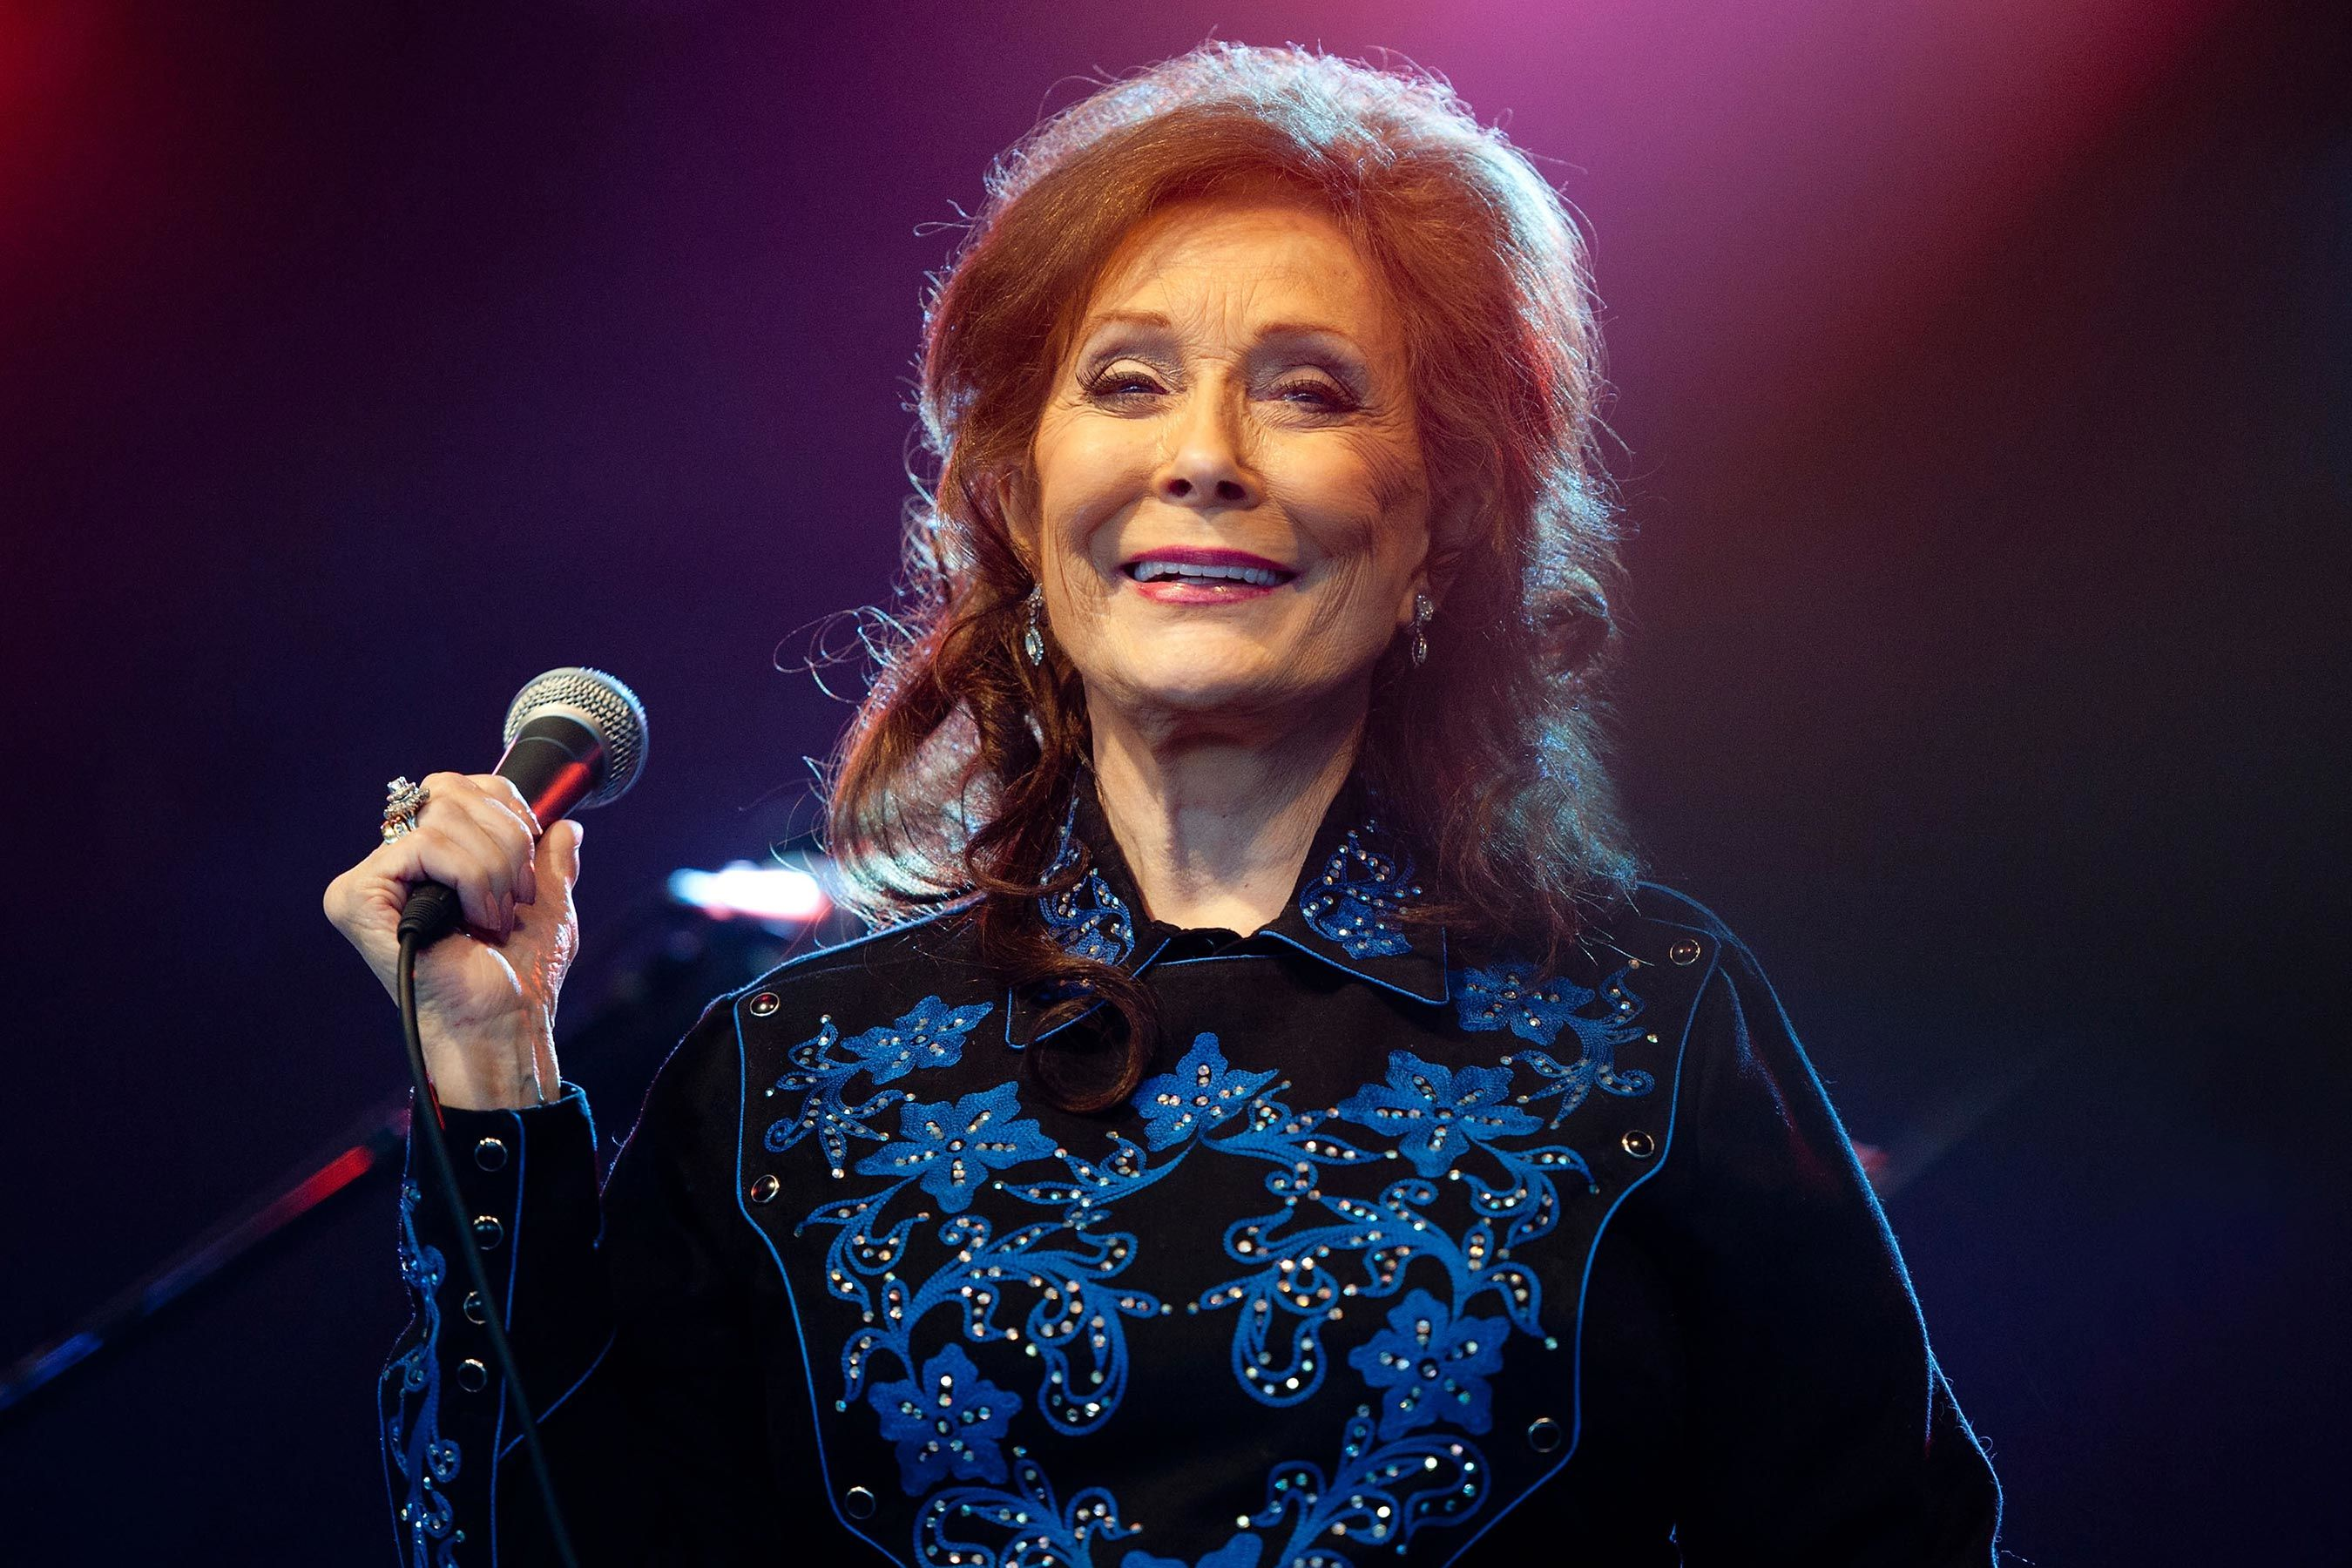 Loretta Lynn announces new album, 'Wouldn't It Be Great'